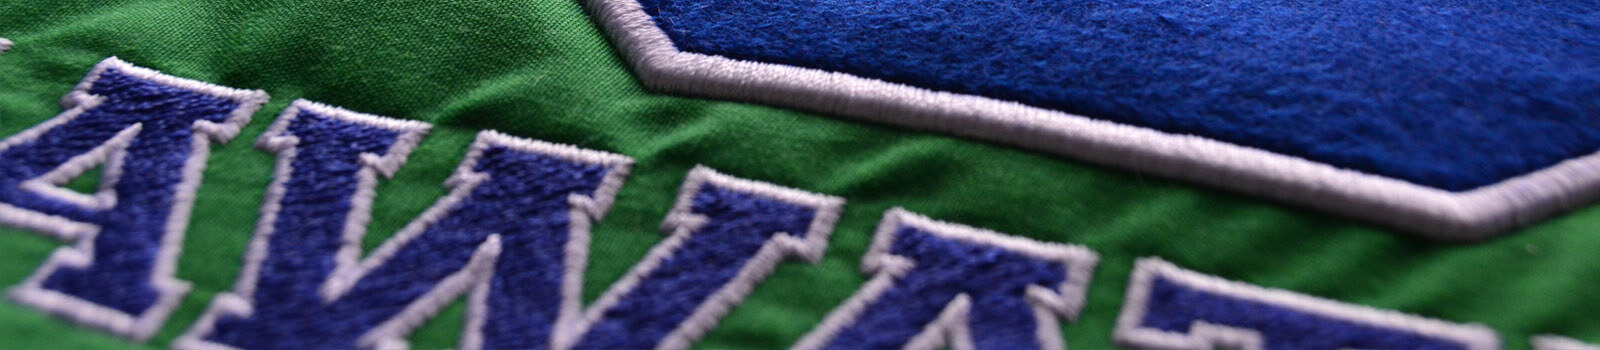 Example of Felt and Twill Applique, showing a blue felt number and blue twill embroidered letters, both edged in white stitching, on green fabric.